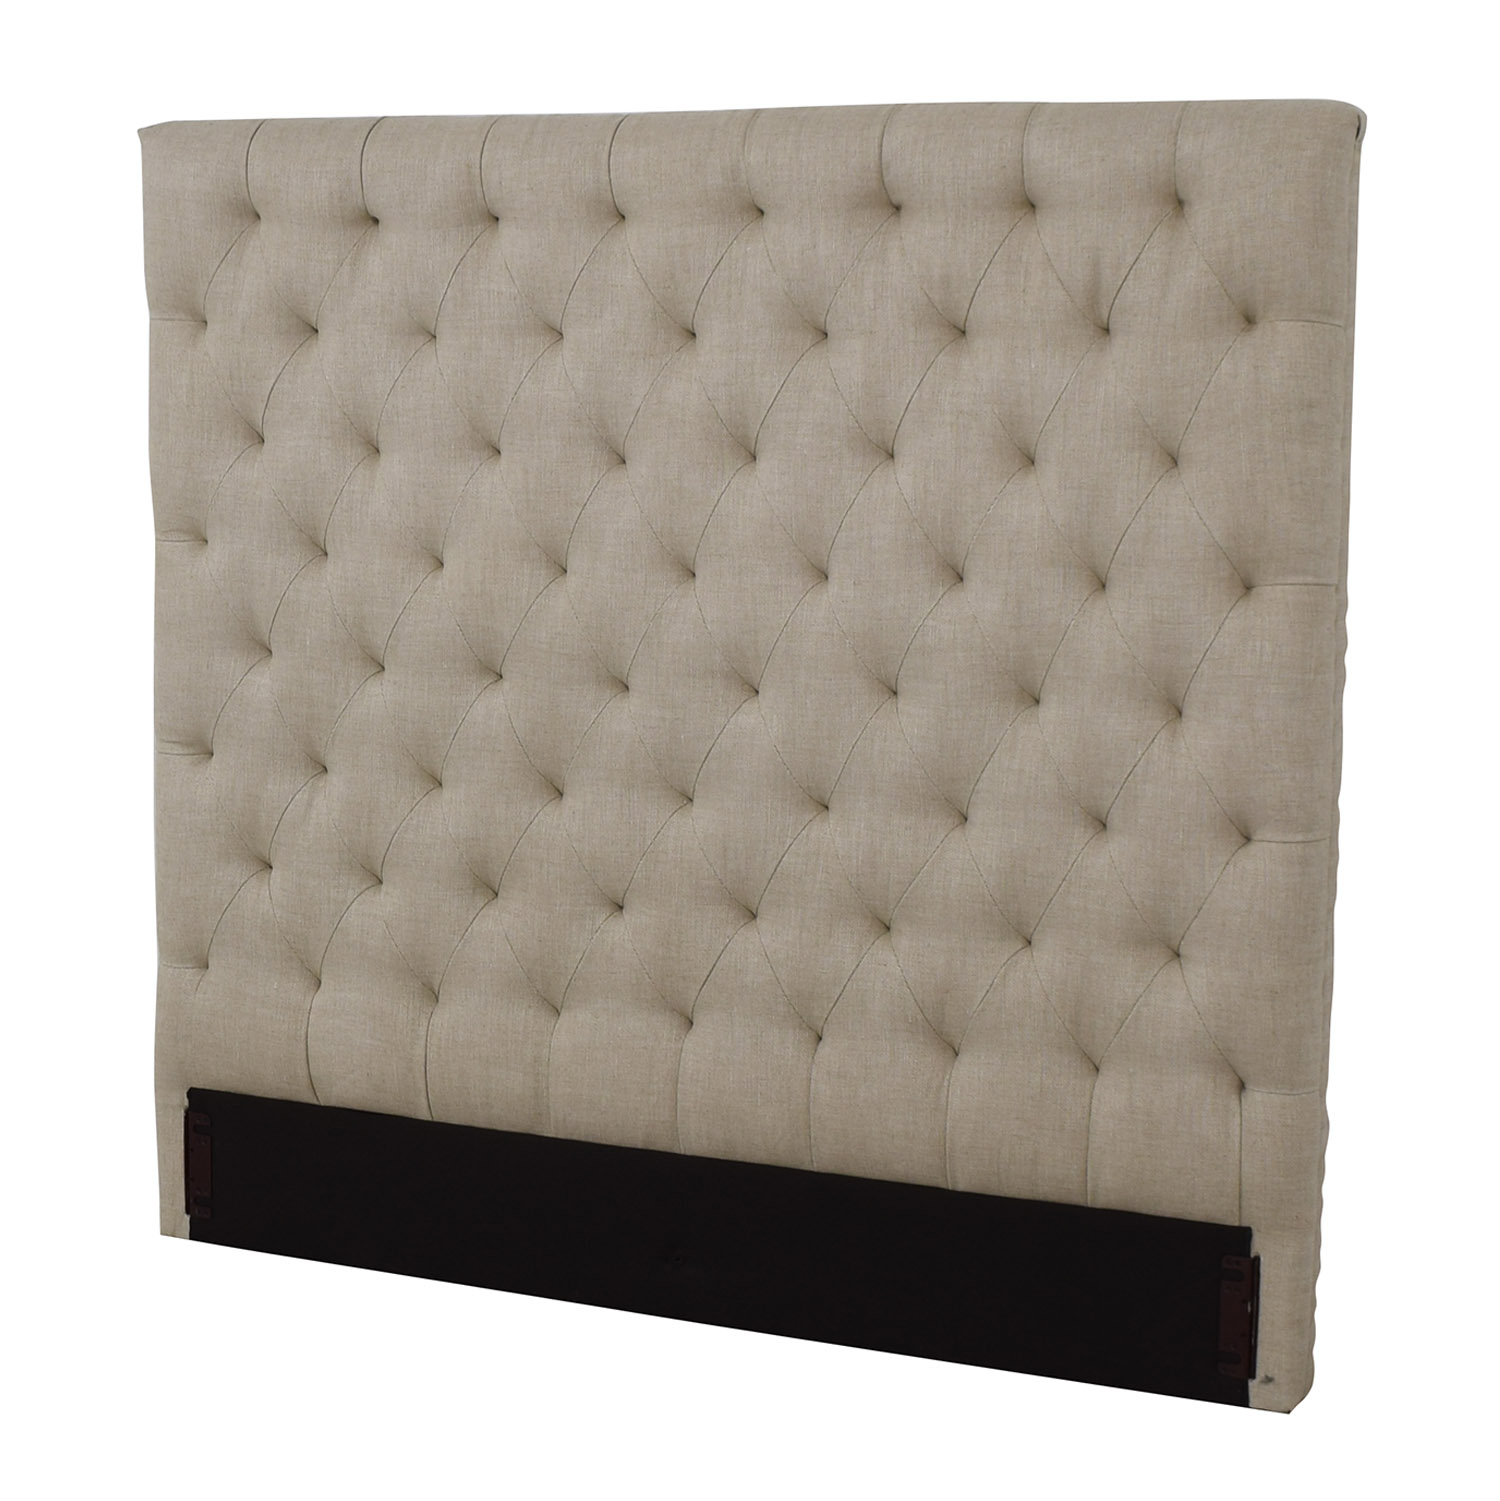 buy Restoration Hardware Restoration Hardware Chesterfield Fabric Panel Headboard online